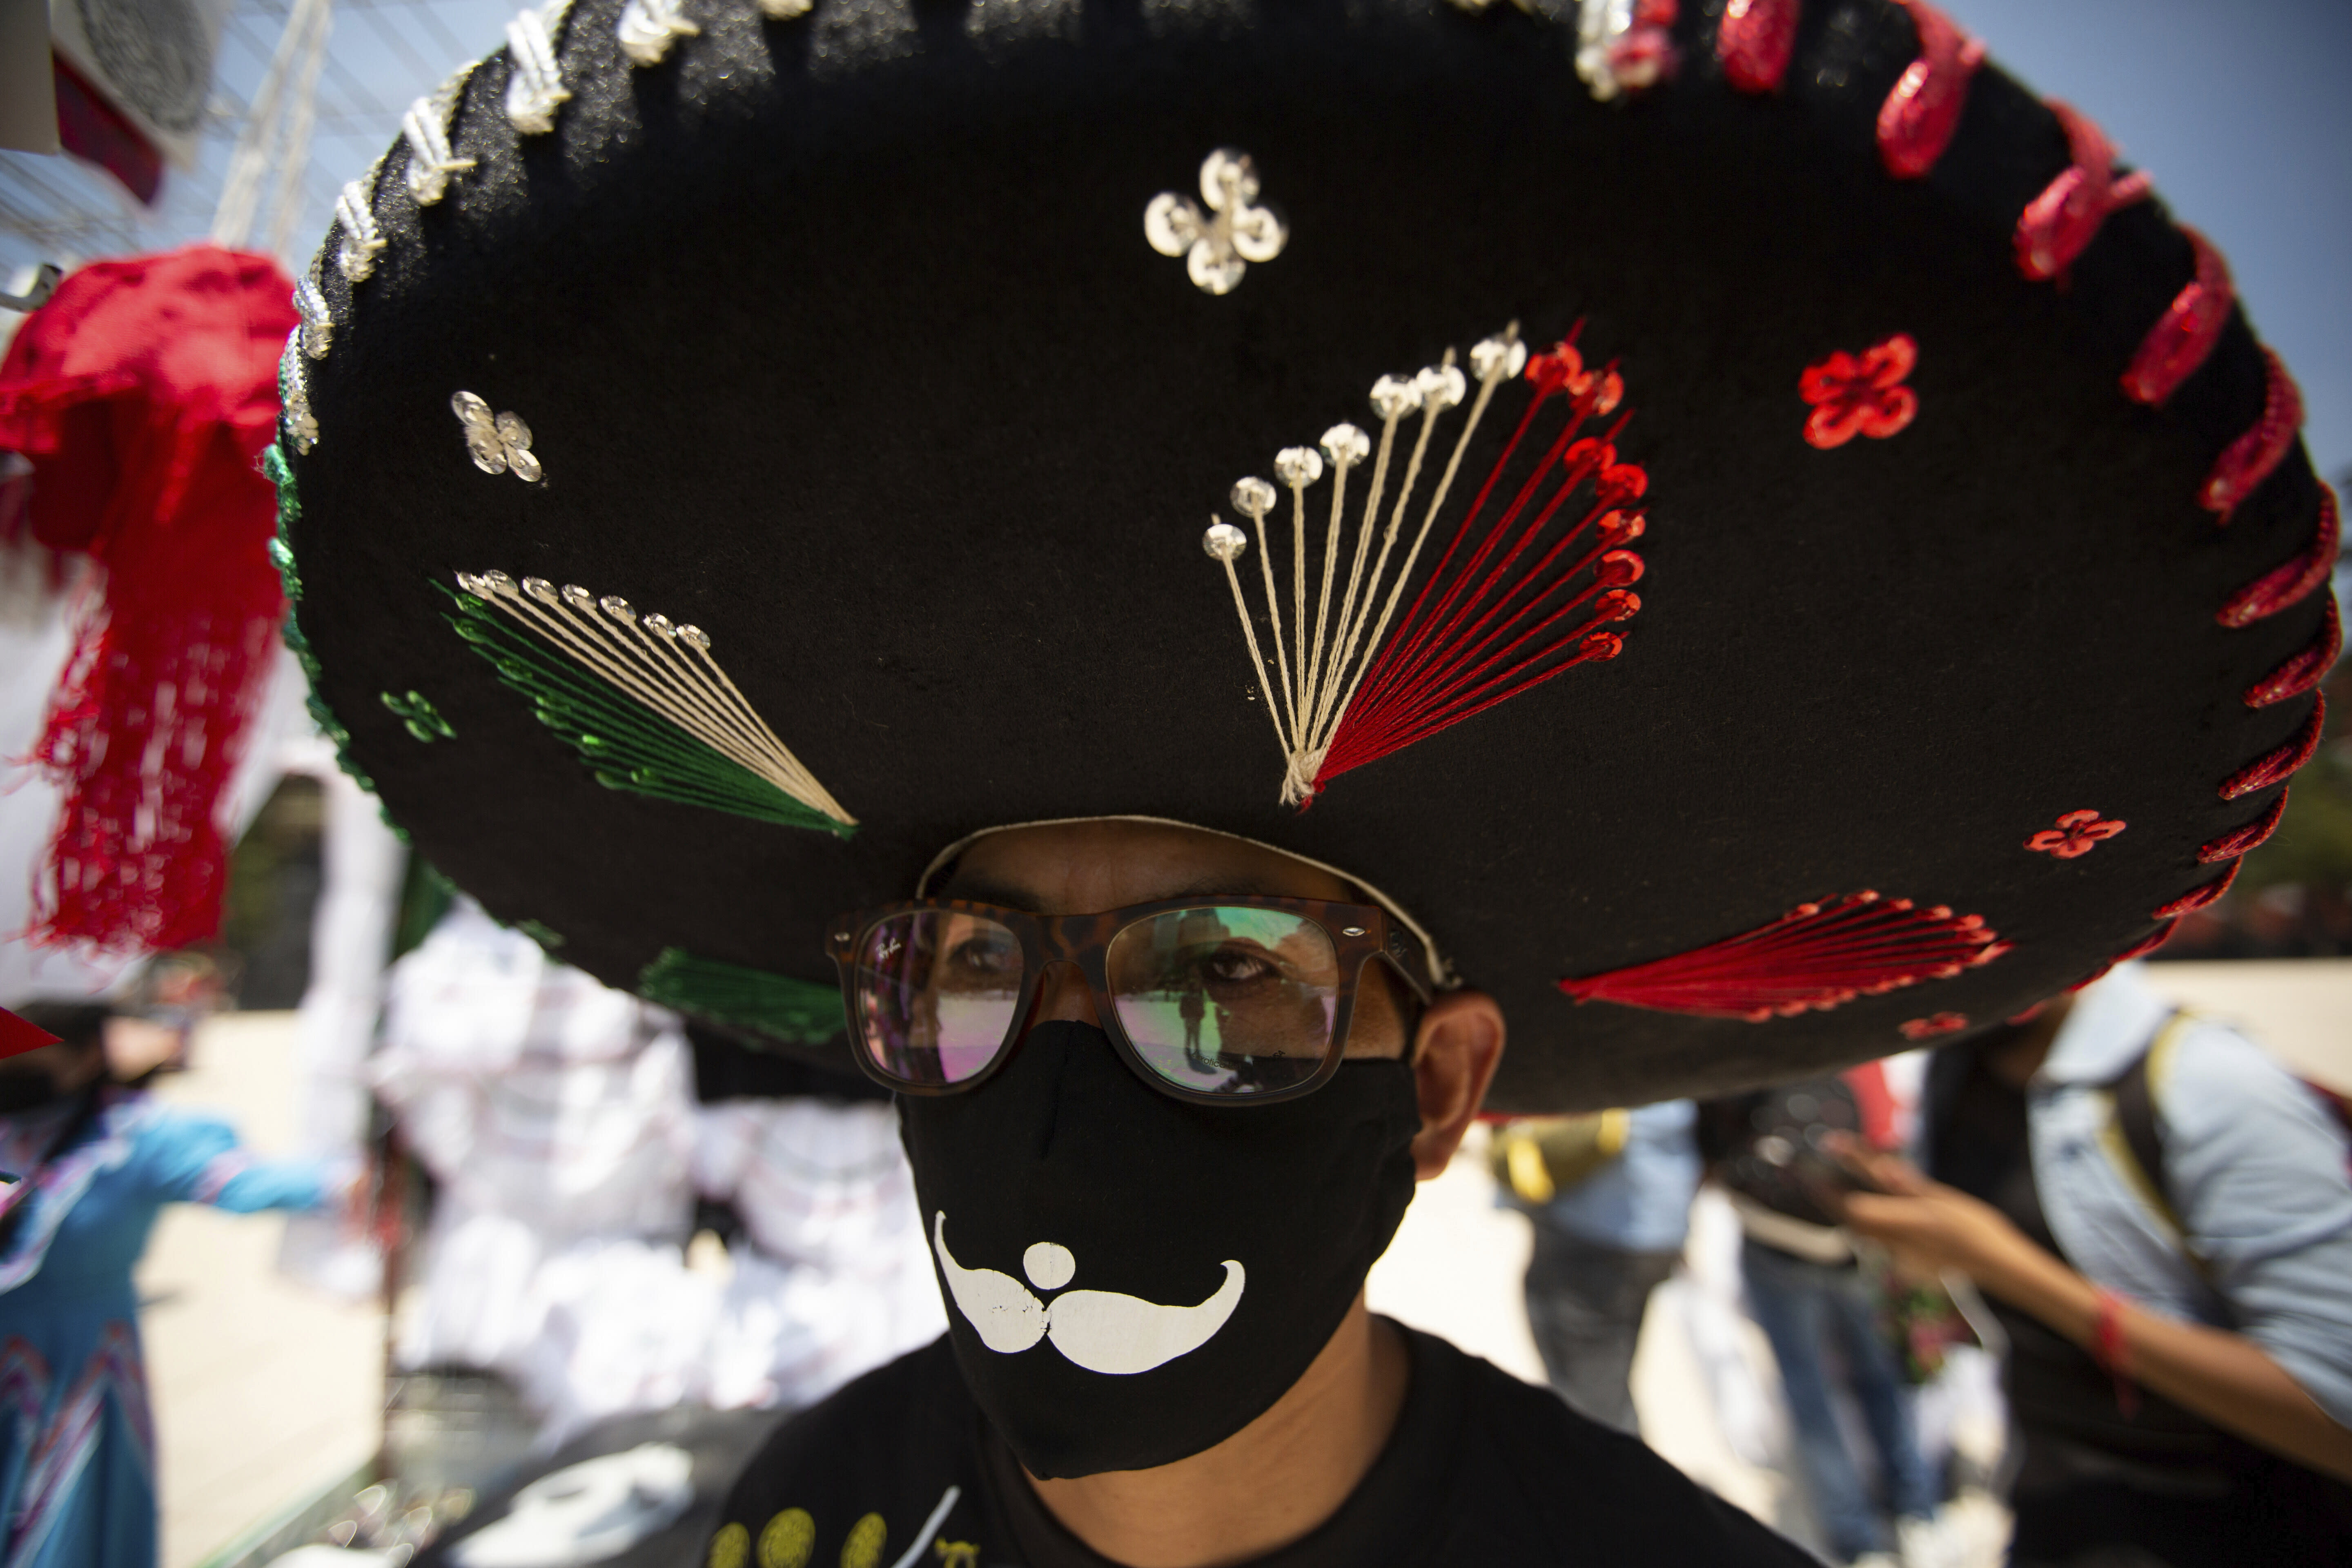 A souvenir vendor wearing a Mexican Charro hat and a mask to curb the spread of the new coronavirus pushes his cart to a new location after authorities allowed the selling of patriotic souvenirs for the upcoming independence day celebration, far from the city's downtown area as a precaution against the spread of COVID-19 in Mexico City, Wednesday, Sept. 2, 2020. (AP Photo/Fernando Llano)